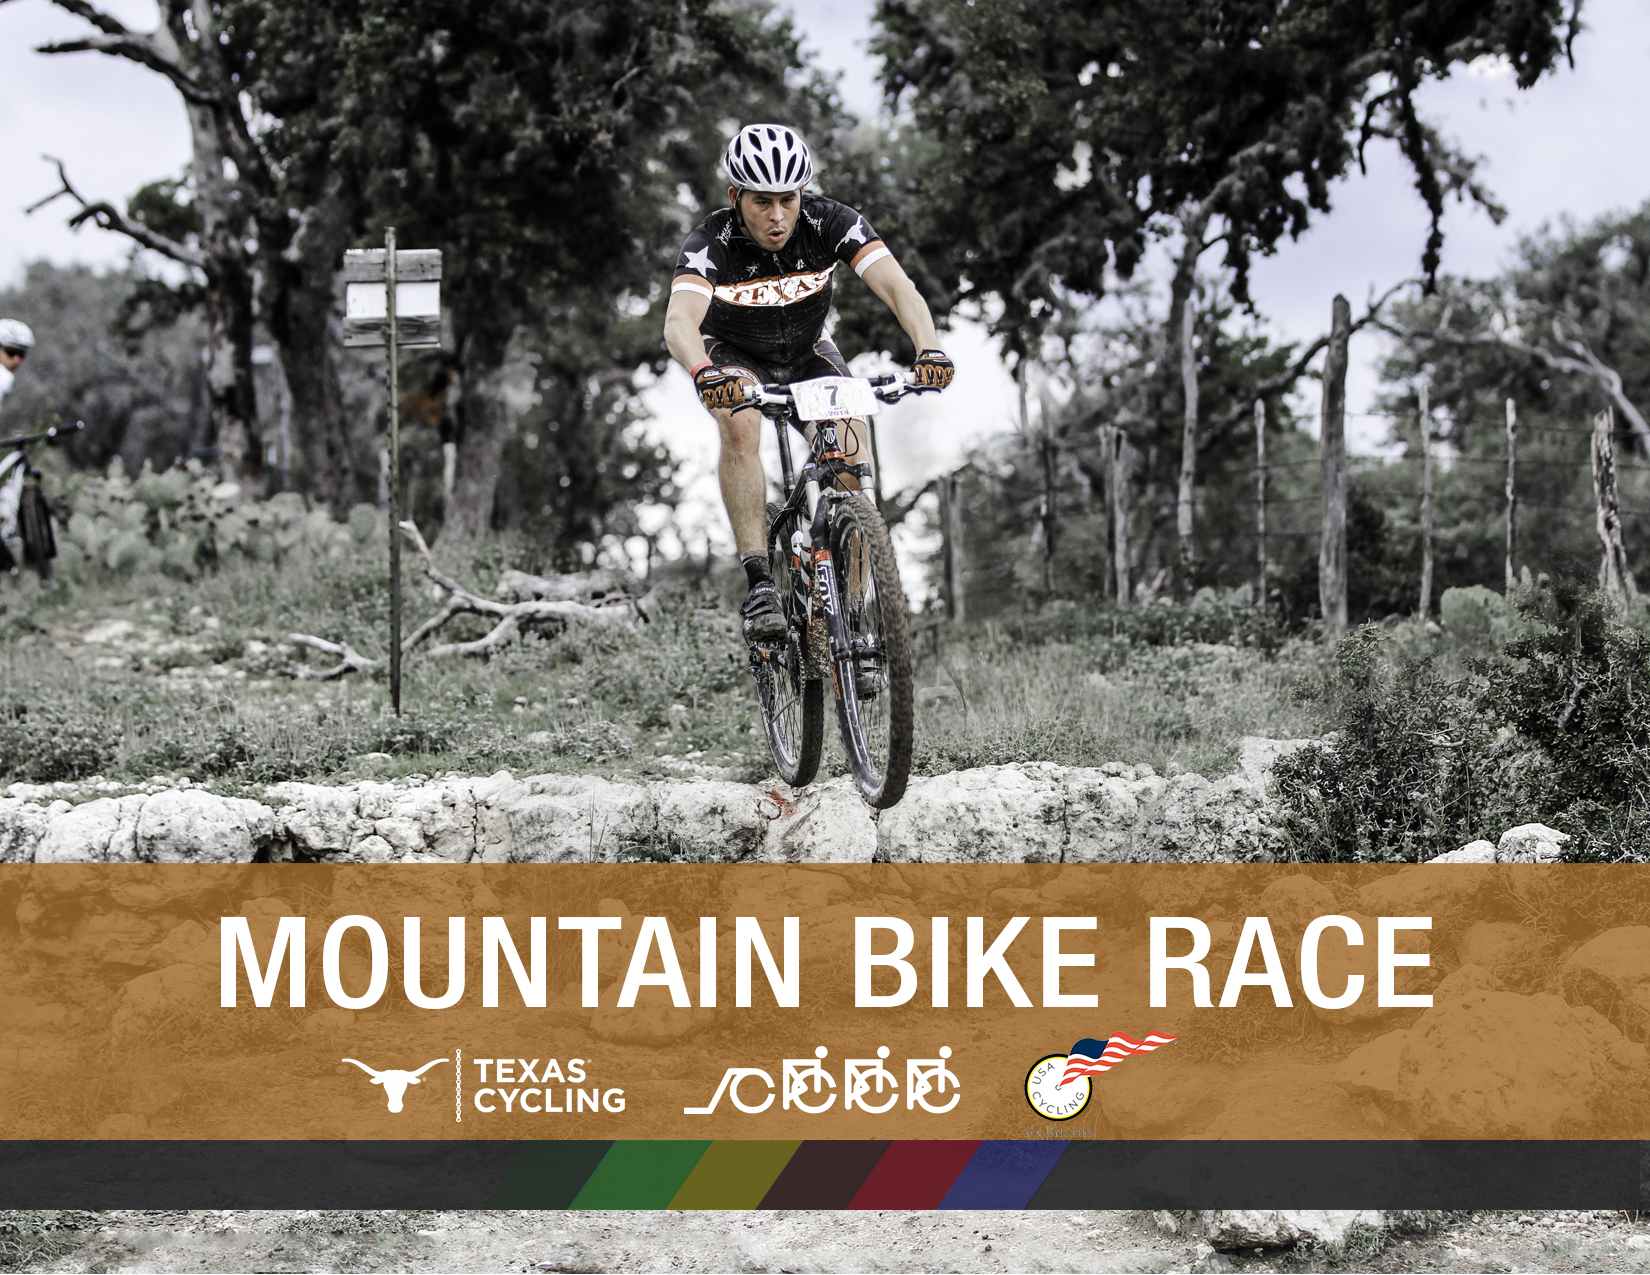 Collegiate Mountain Bike Season is Starting! – Texas Cycling